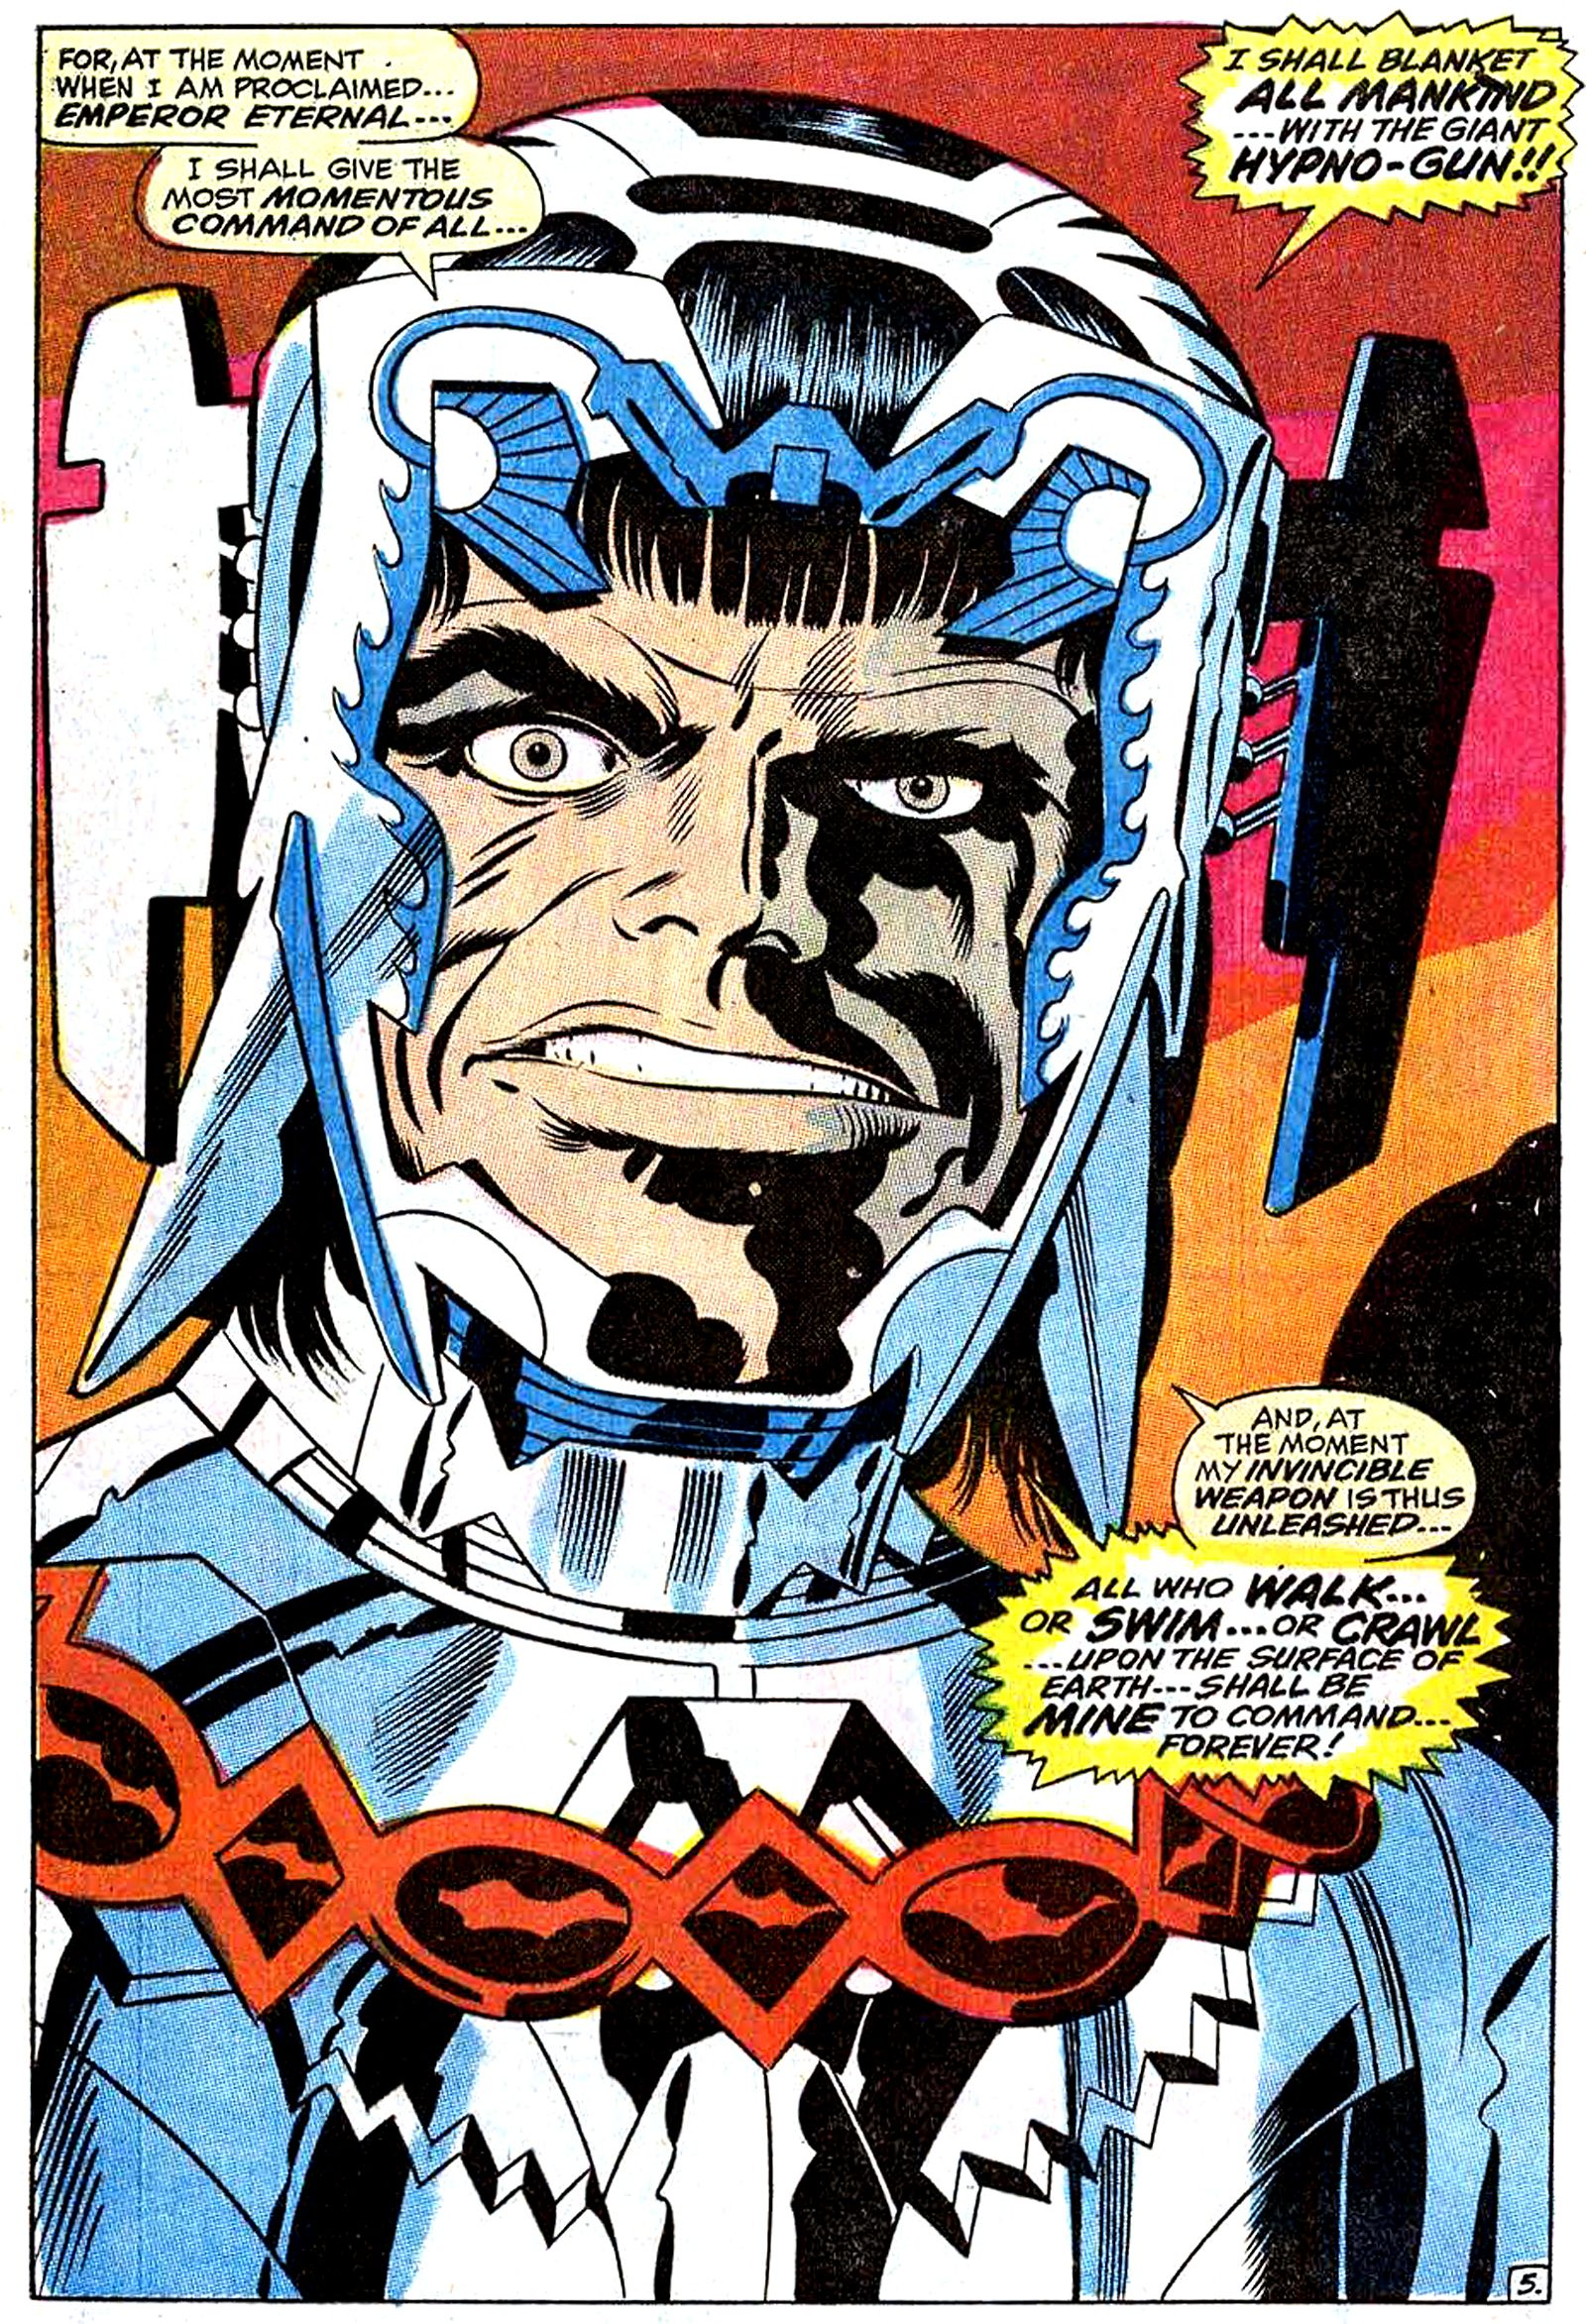 The face of twisted genius, as only Jack Kirby can render it! Maximus the Mad, from 'Fantastic Four' #83